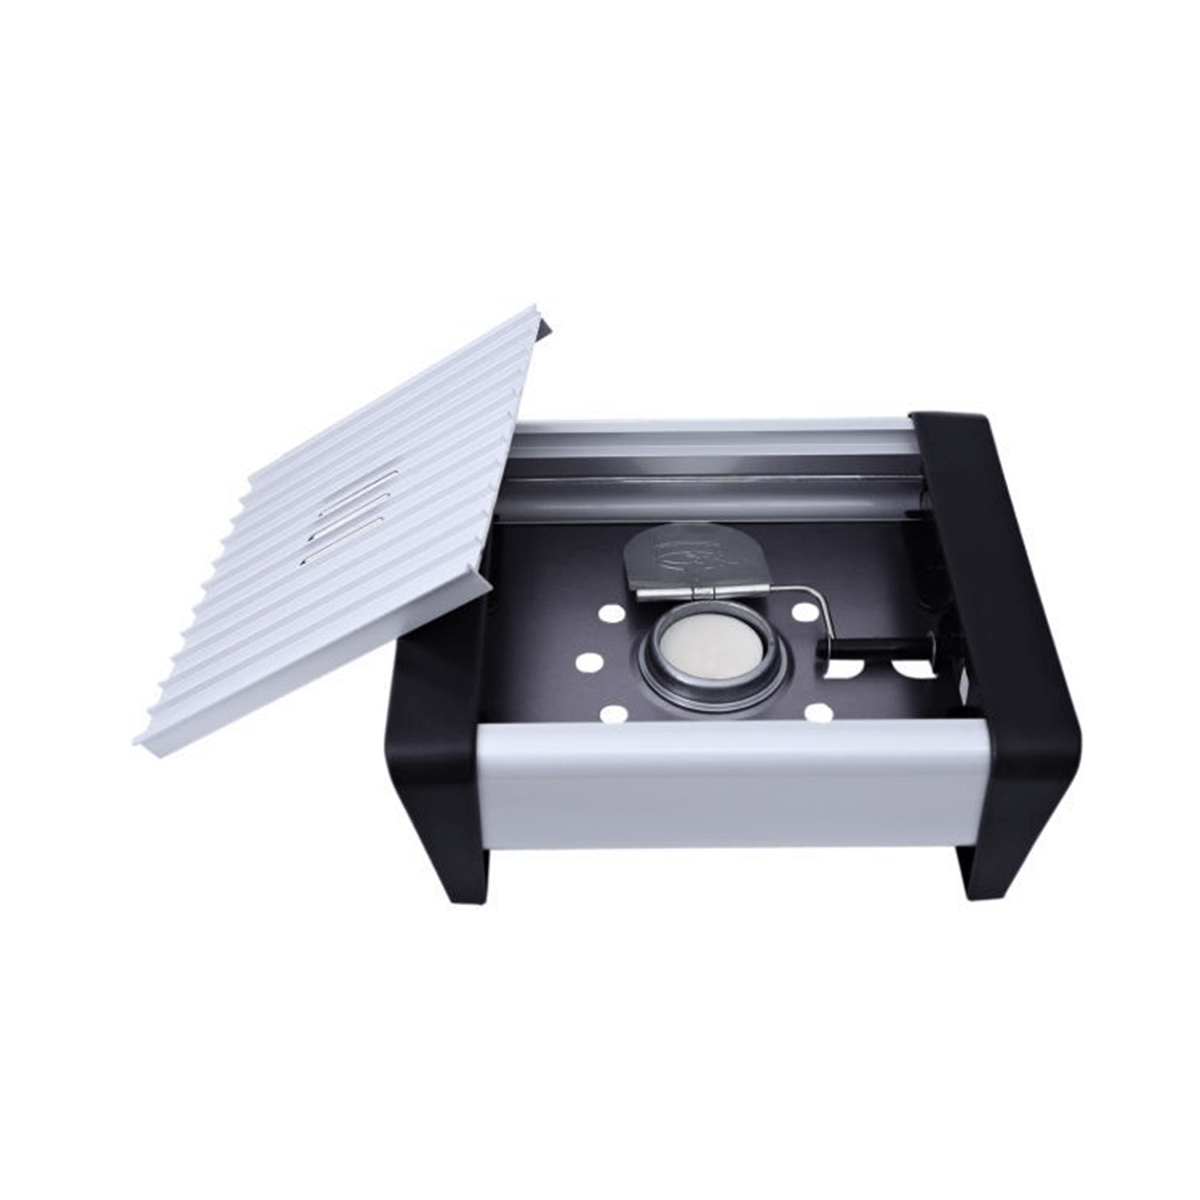 Liying Stainless Steel Food Warmer, Silver